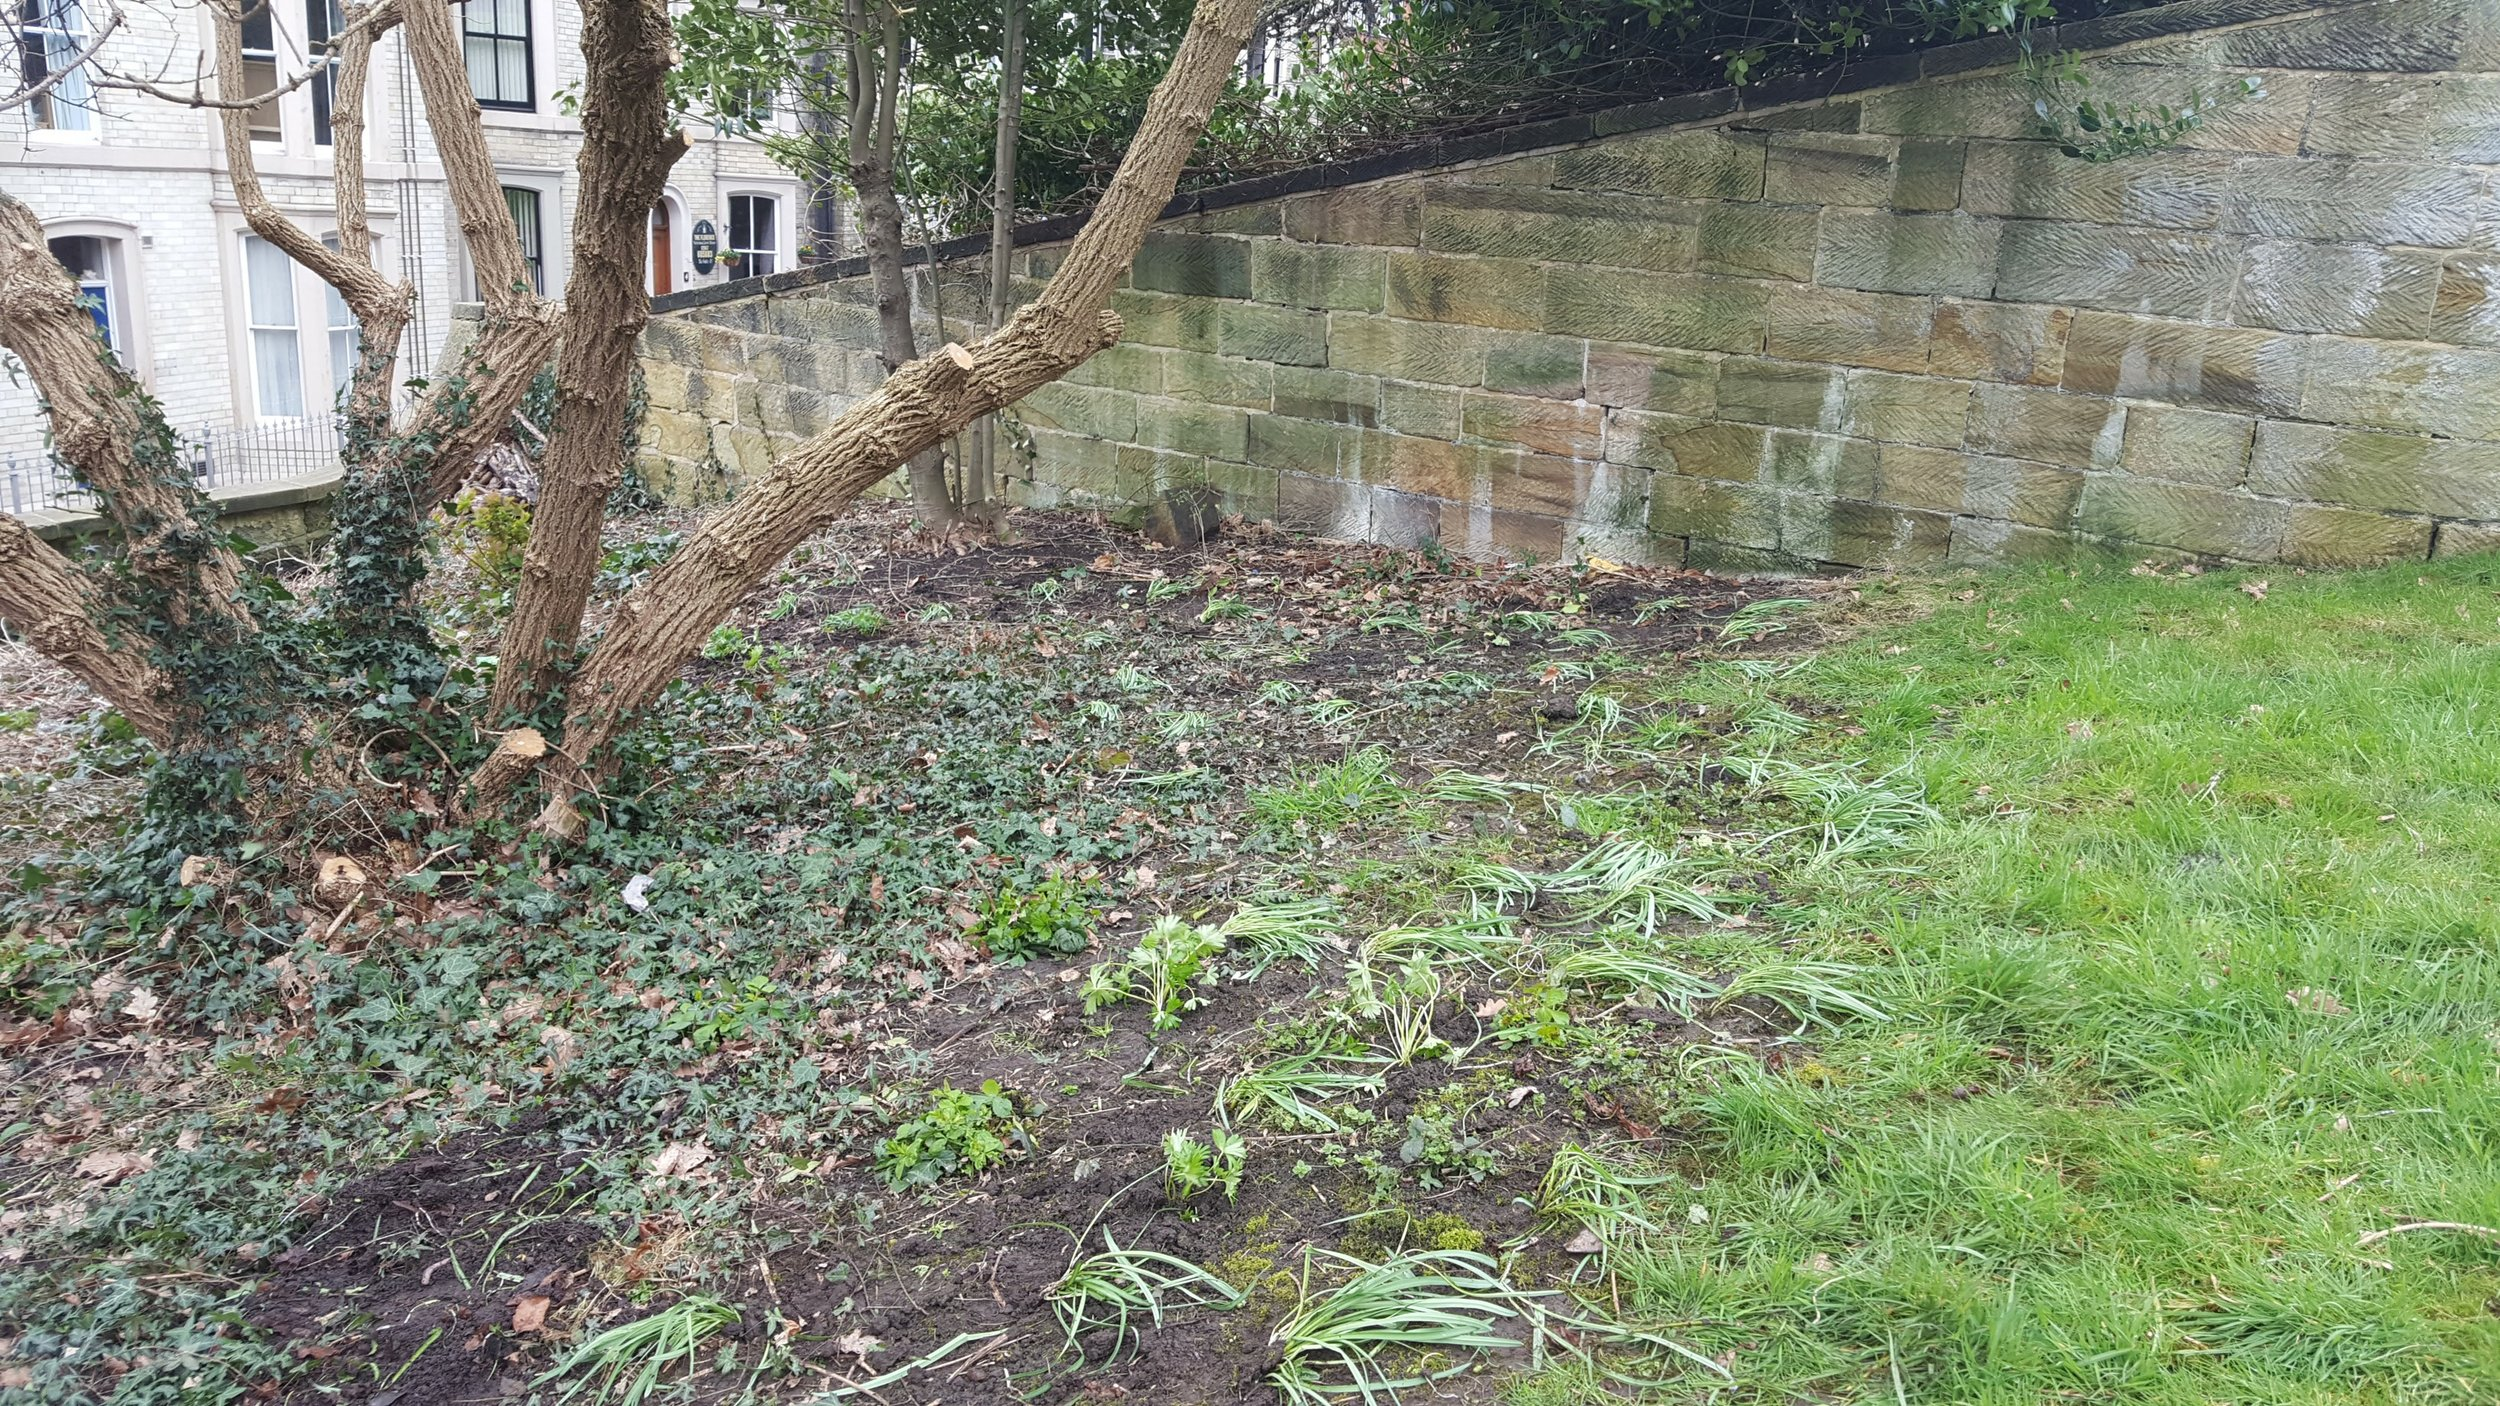 Donated snowdrops and aconites